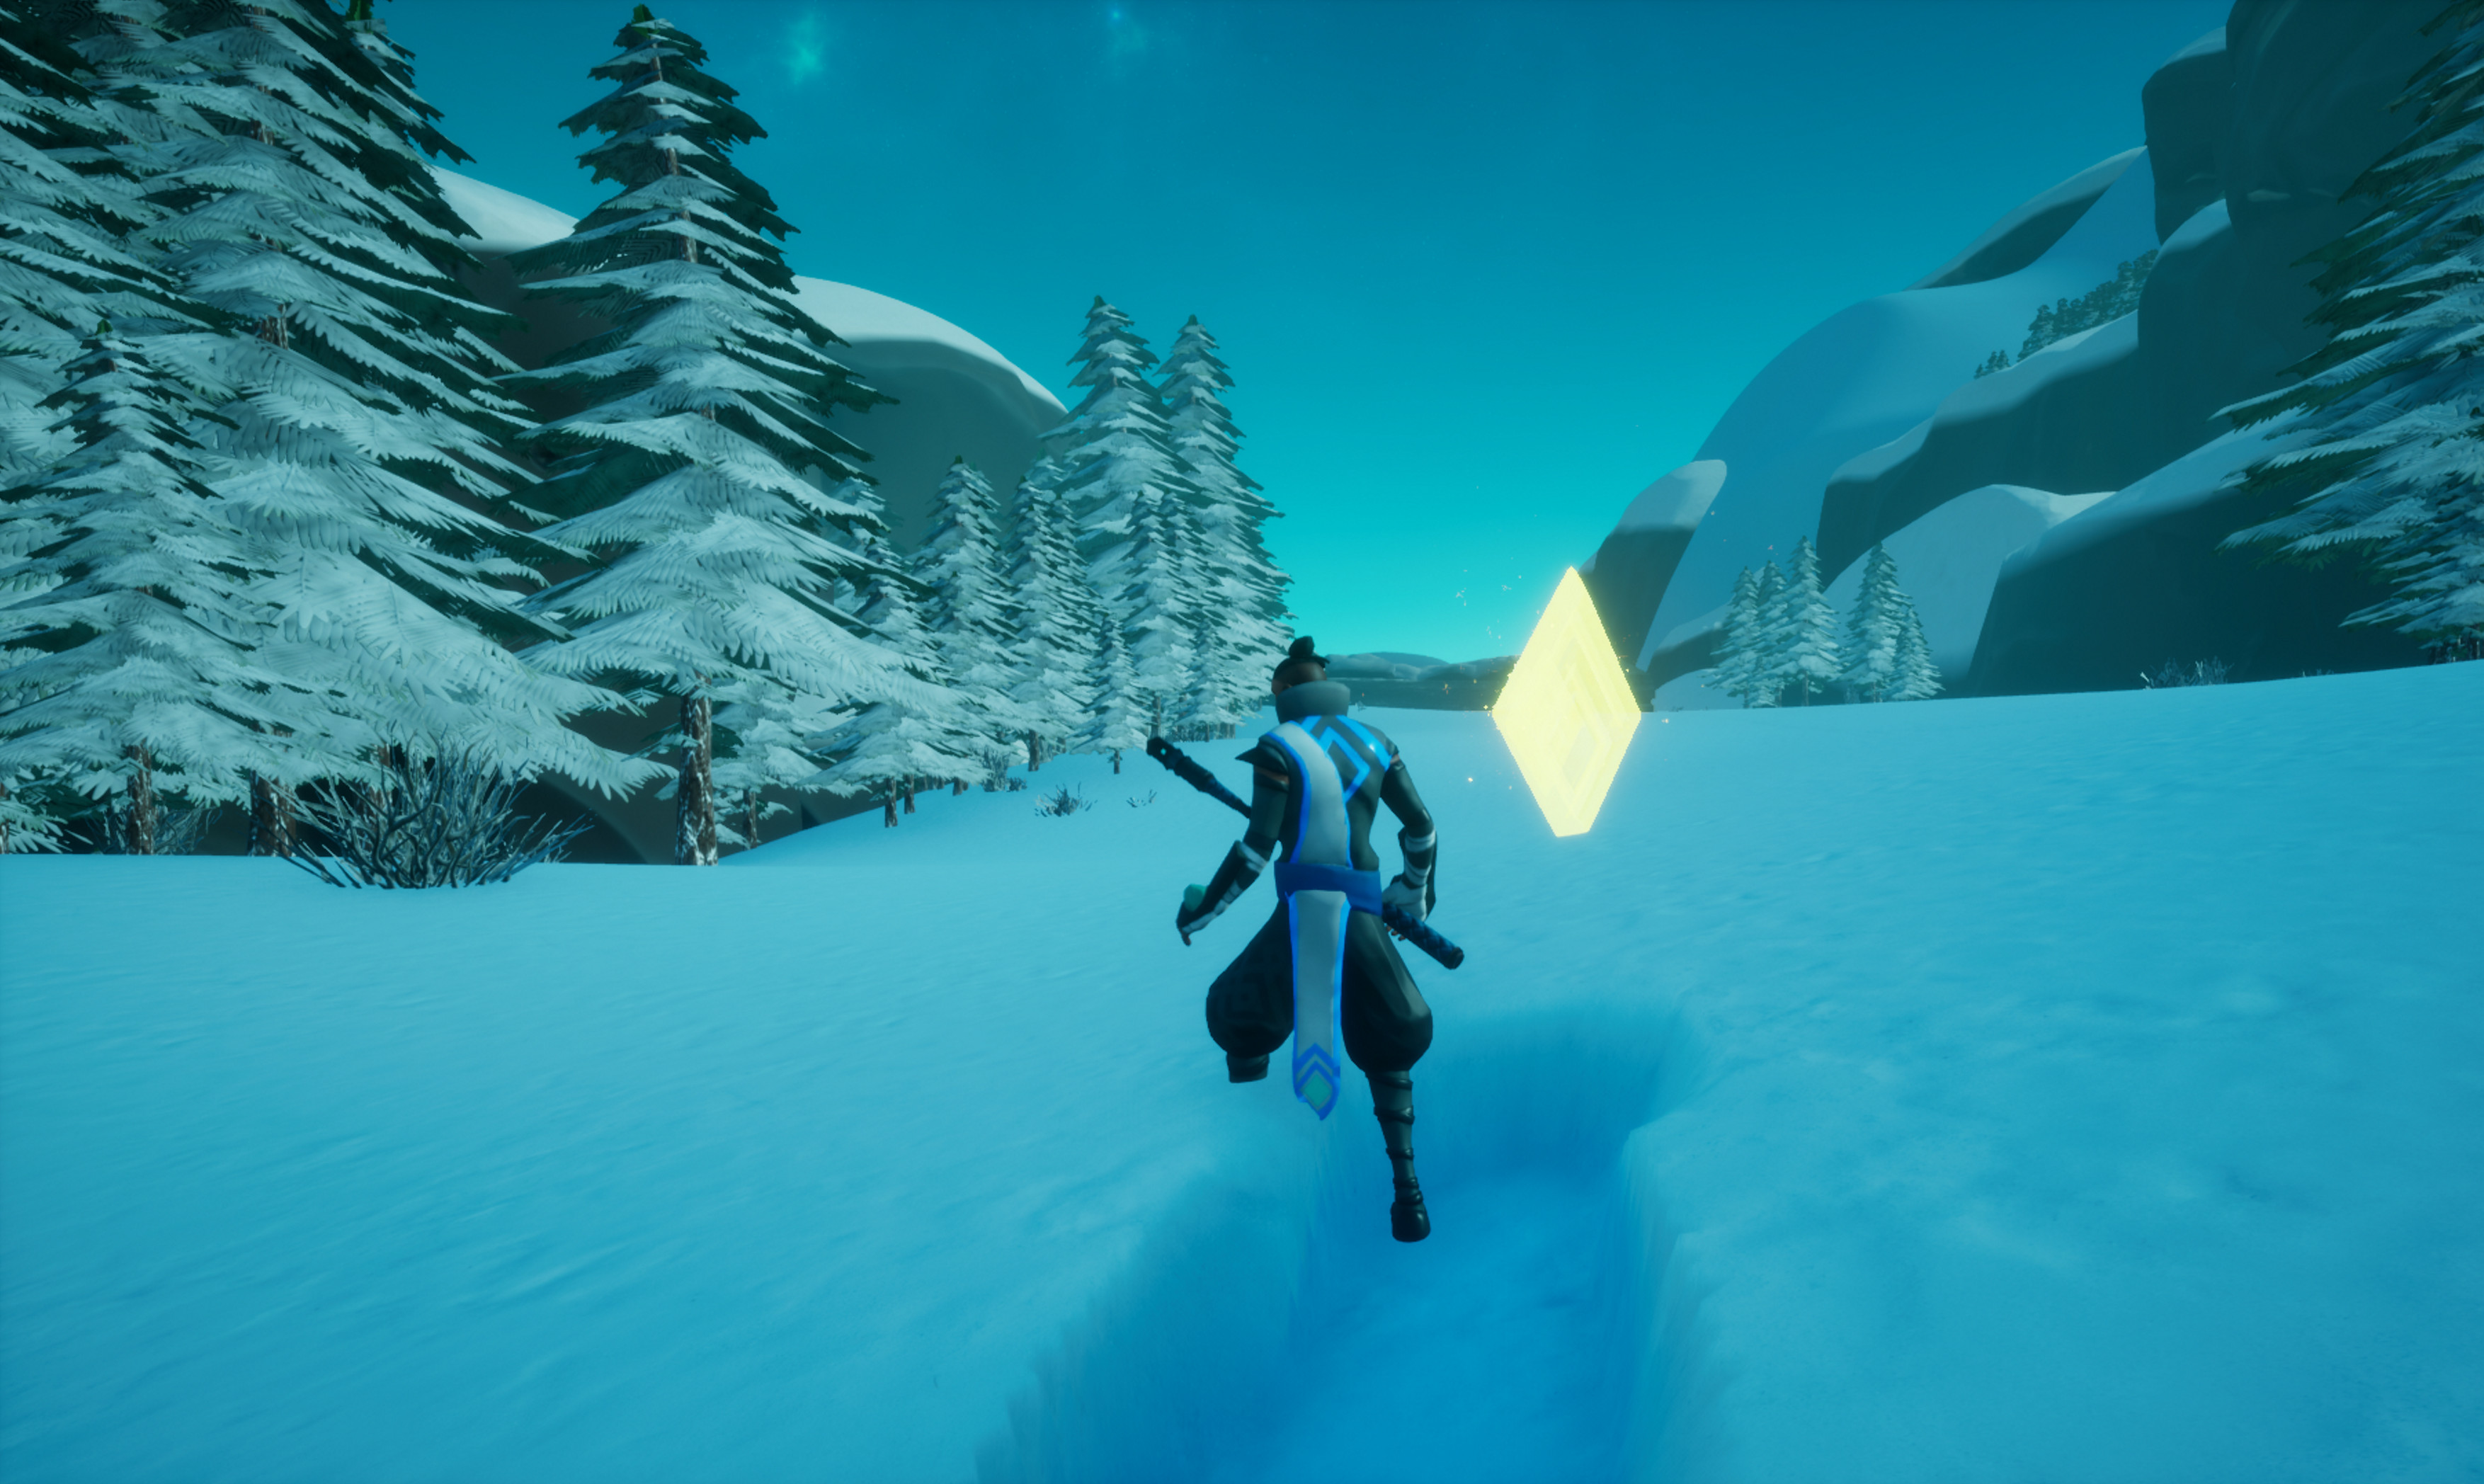 Your goal is to collect as many crystals and finish the level as quick as possible (without tripping over obstacles as you snowboard through the game)